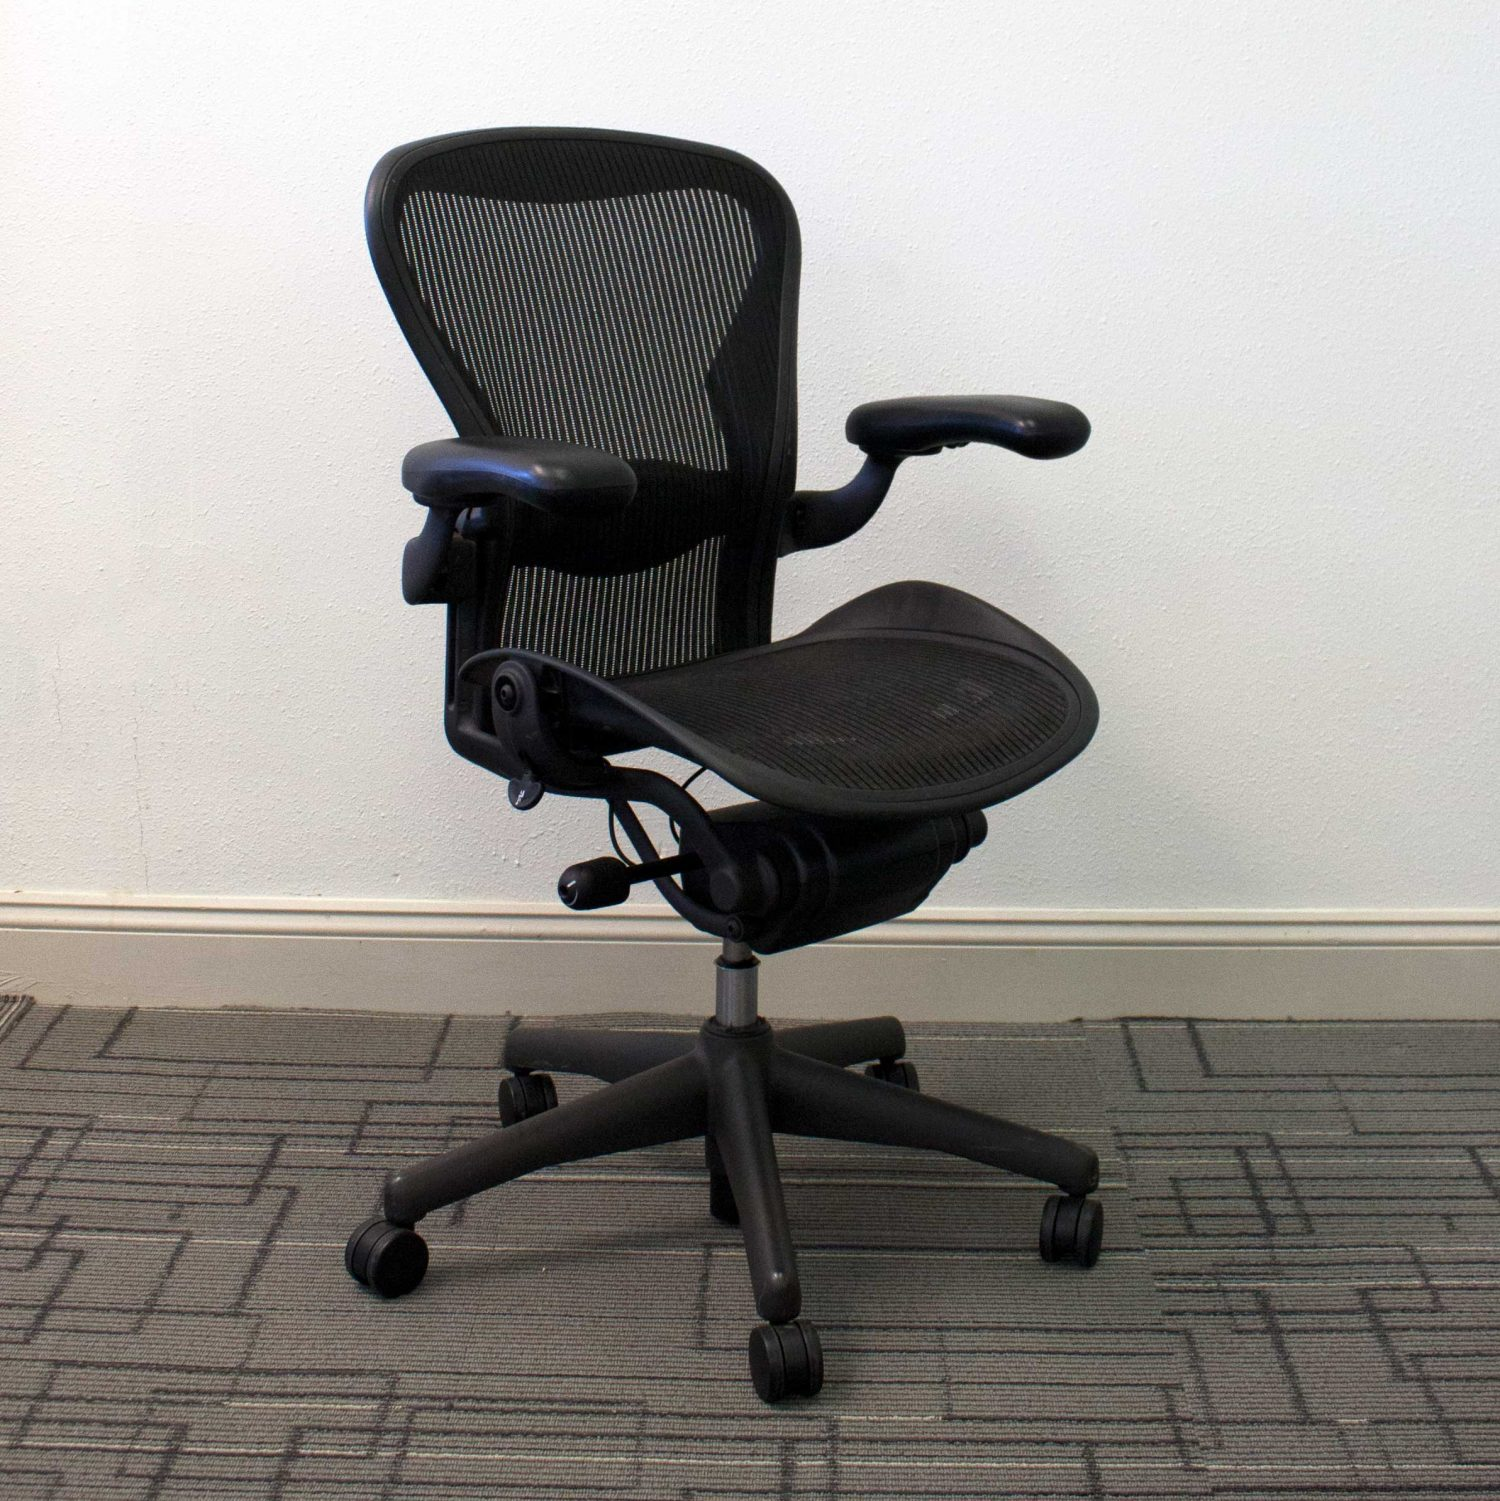 used herman miller aeron chairs - Herman Miller Aeron Chair